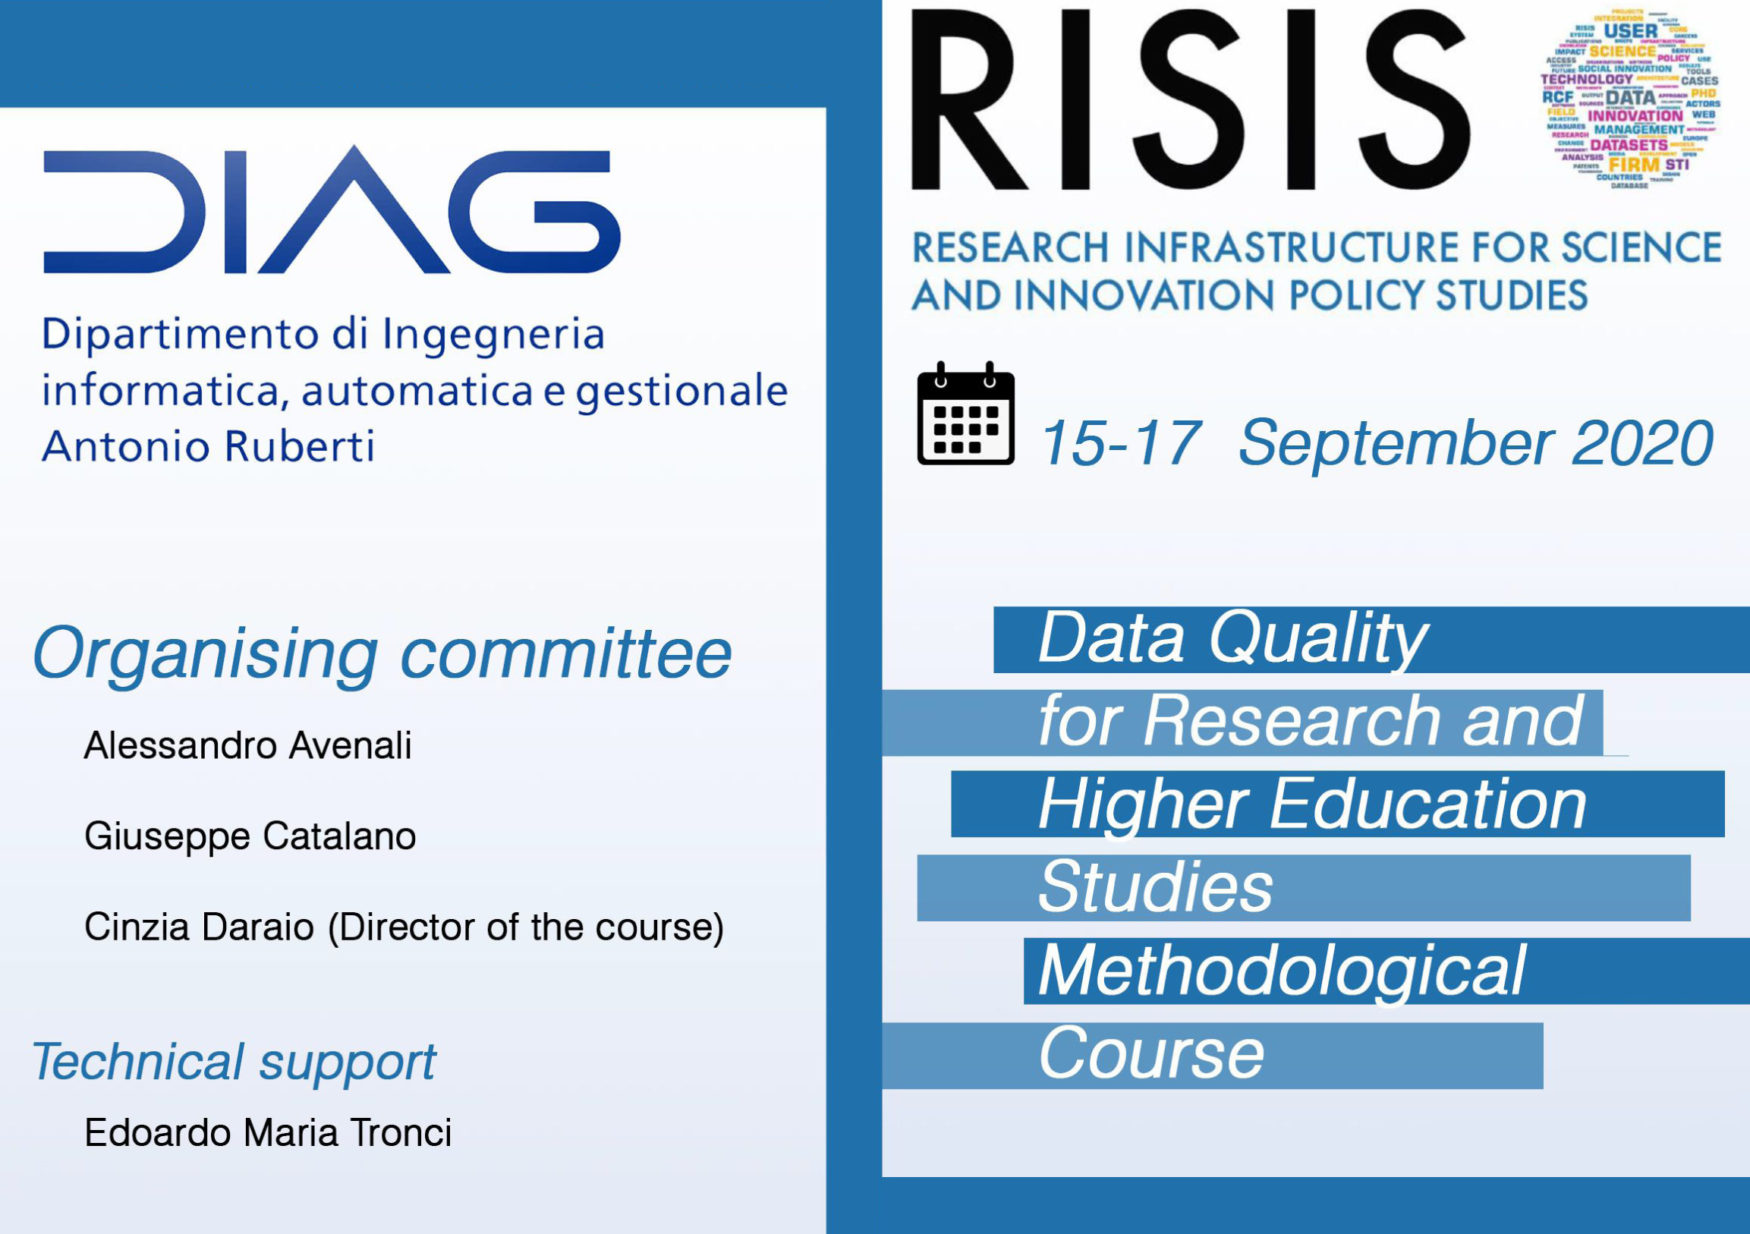 RISIS Online Training on Data Quality for Research and Higher Education Studies